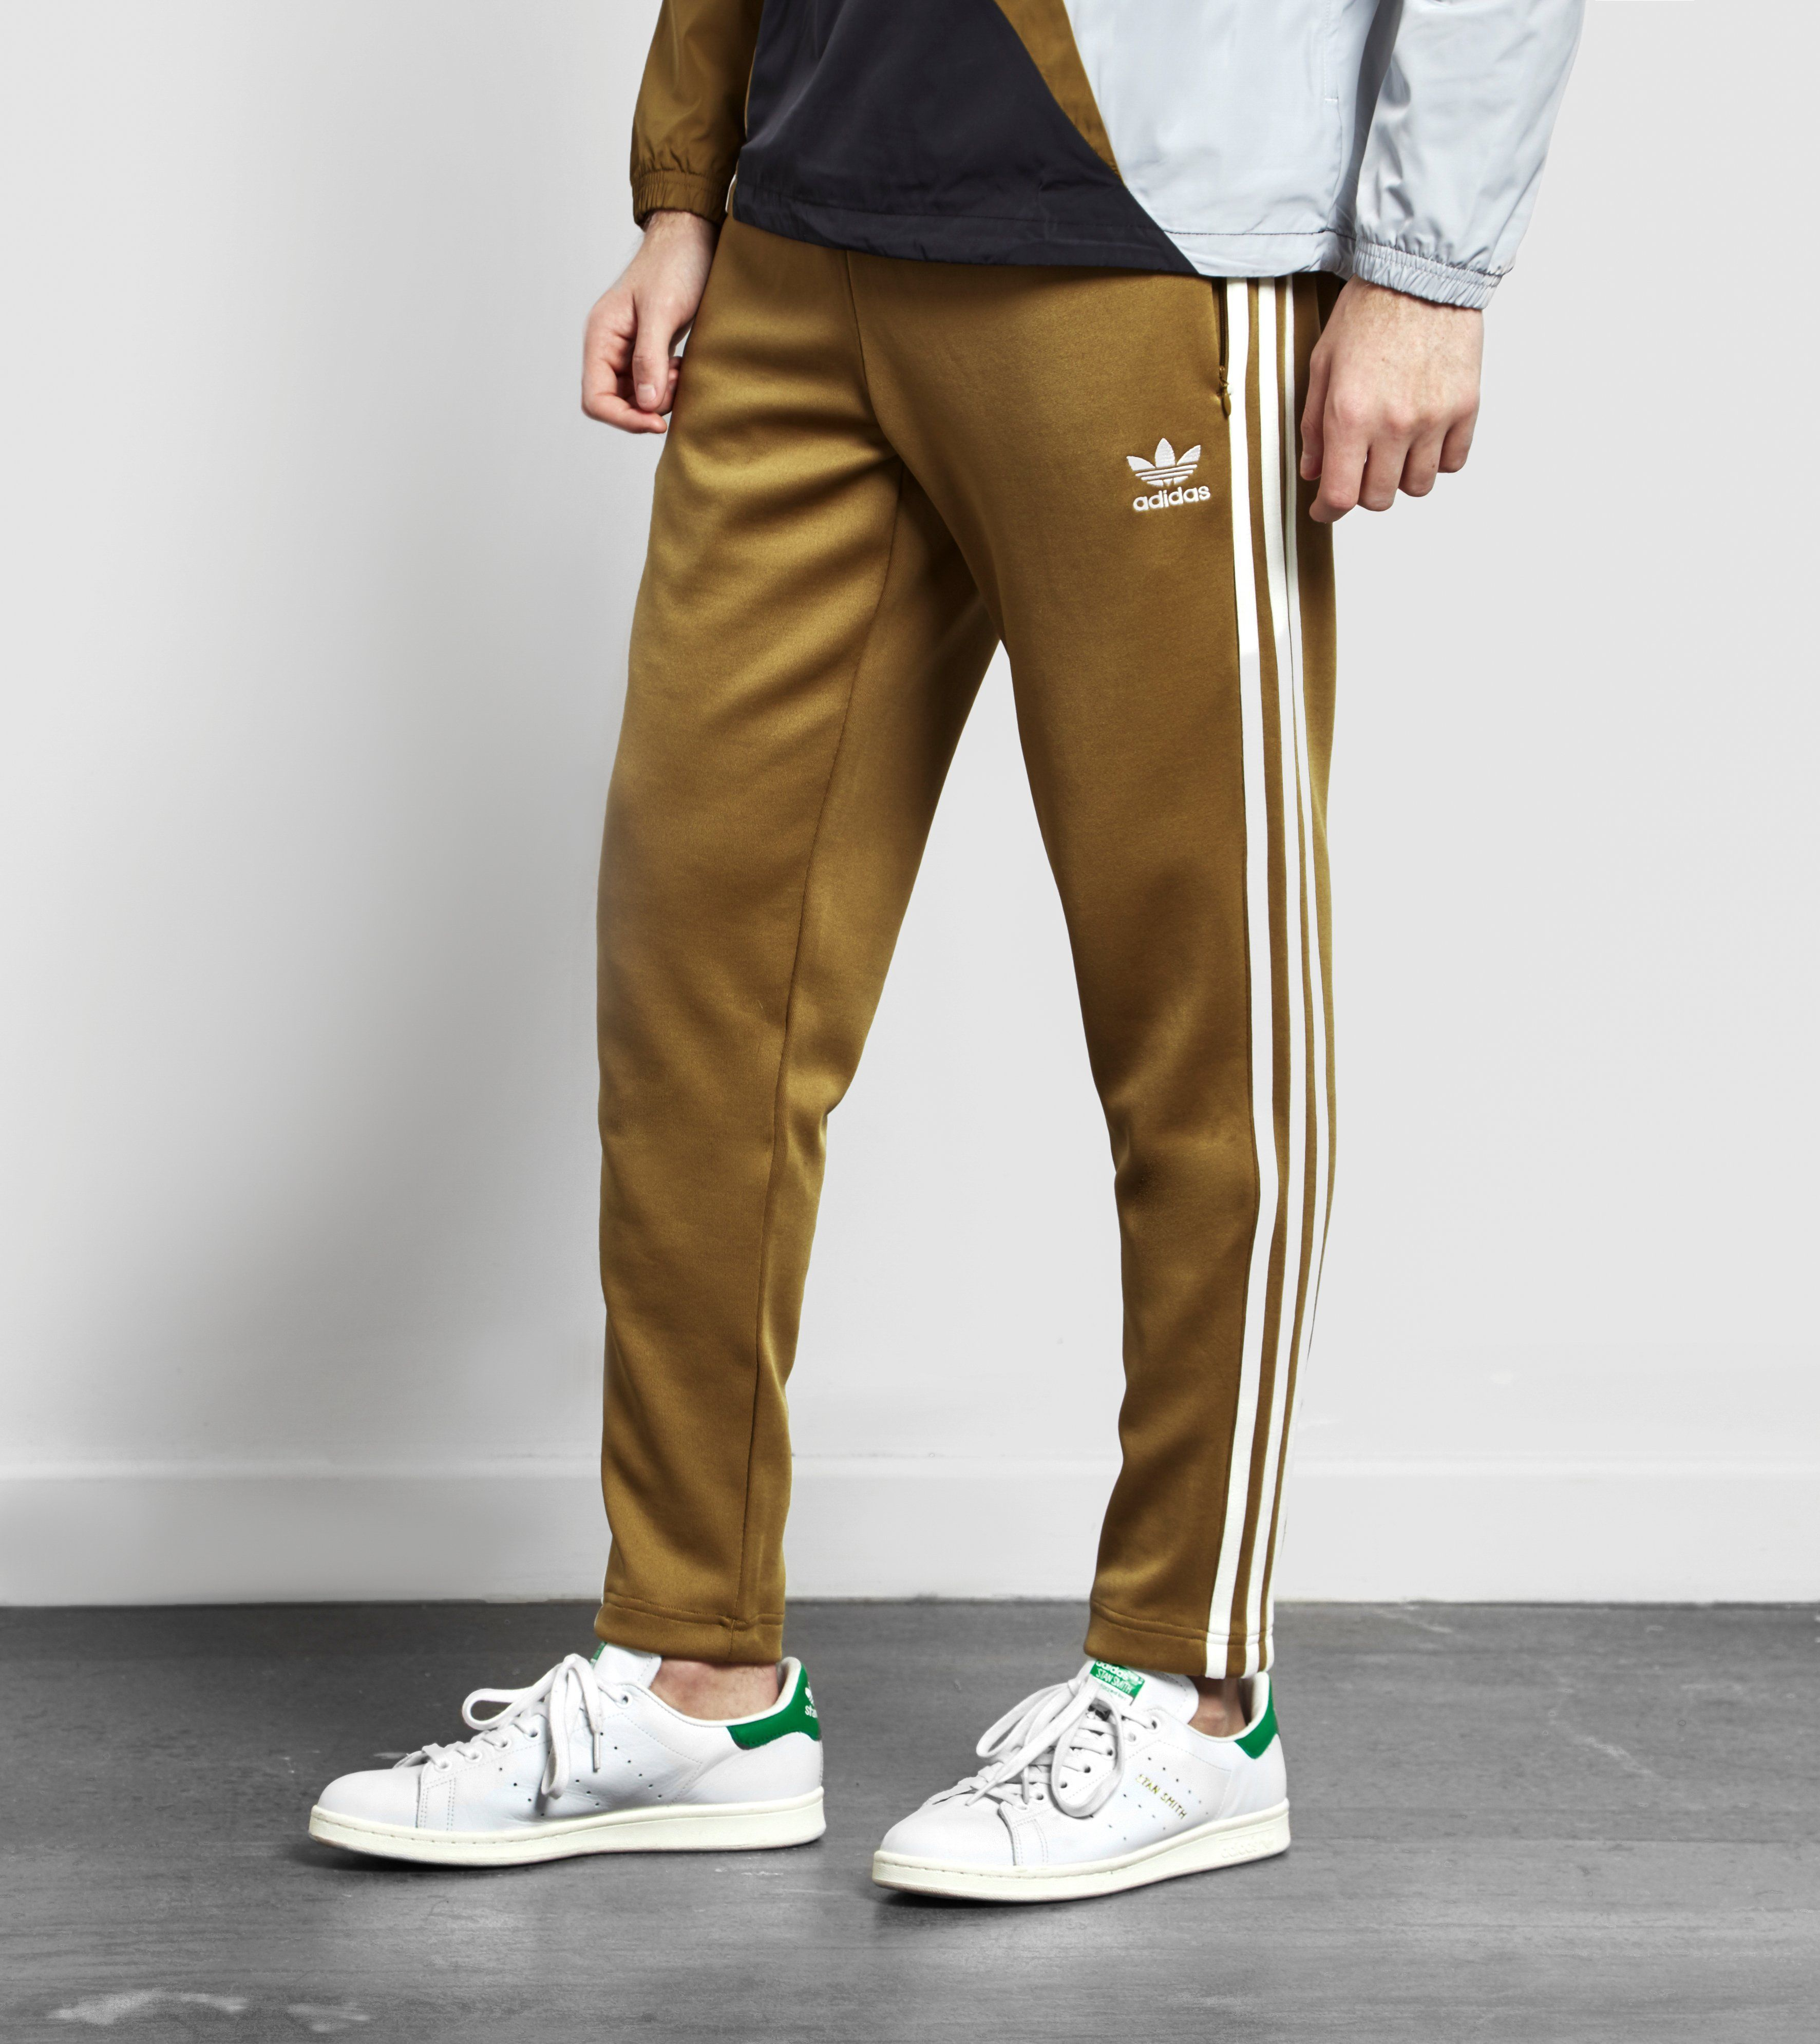 1fe4d03d8c02 adidas Originals Superstar Track Pant - size  Exclusive - find out more on  our site